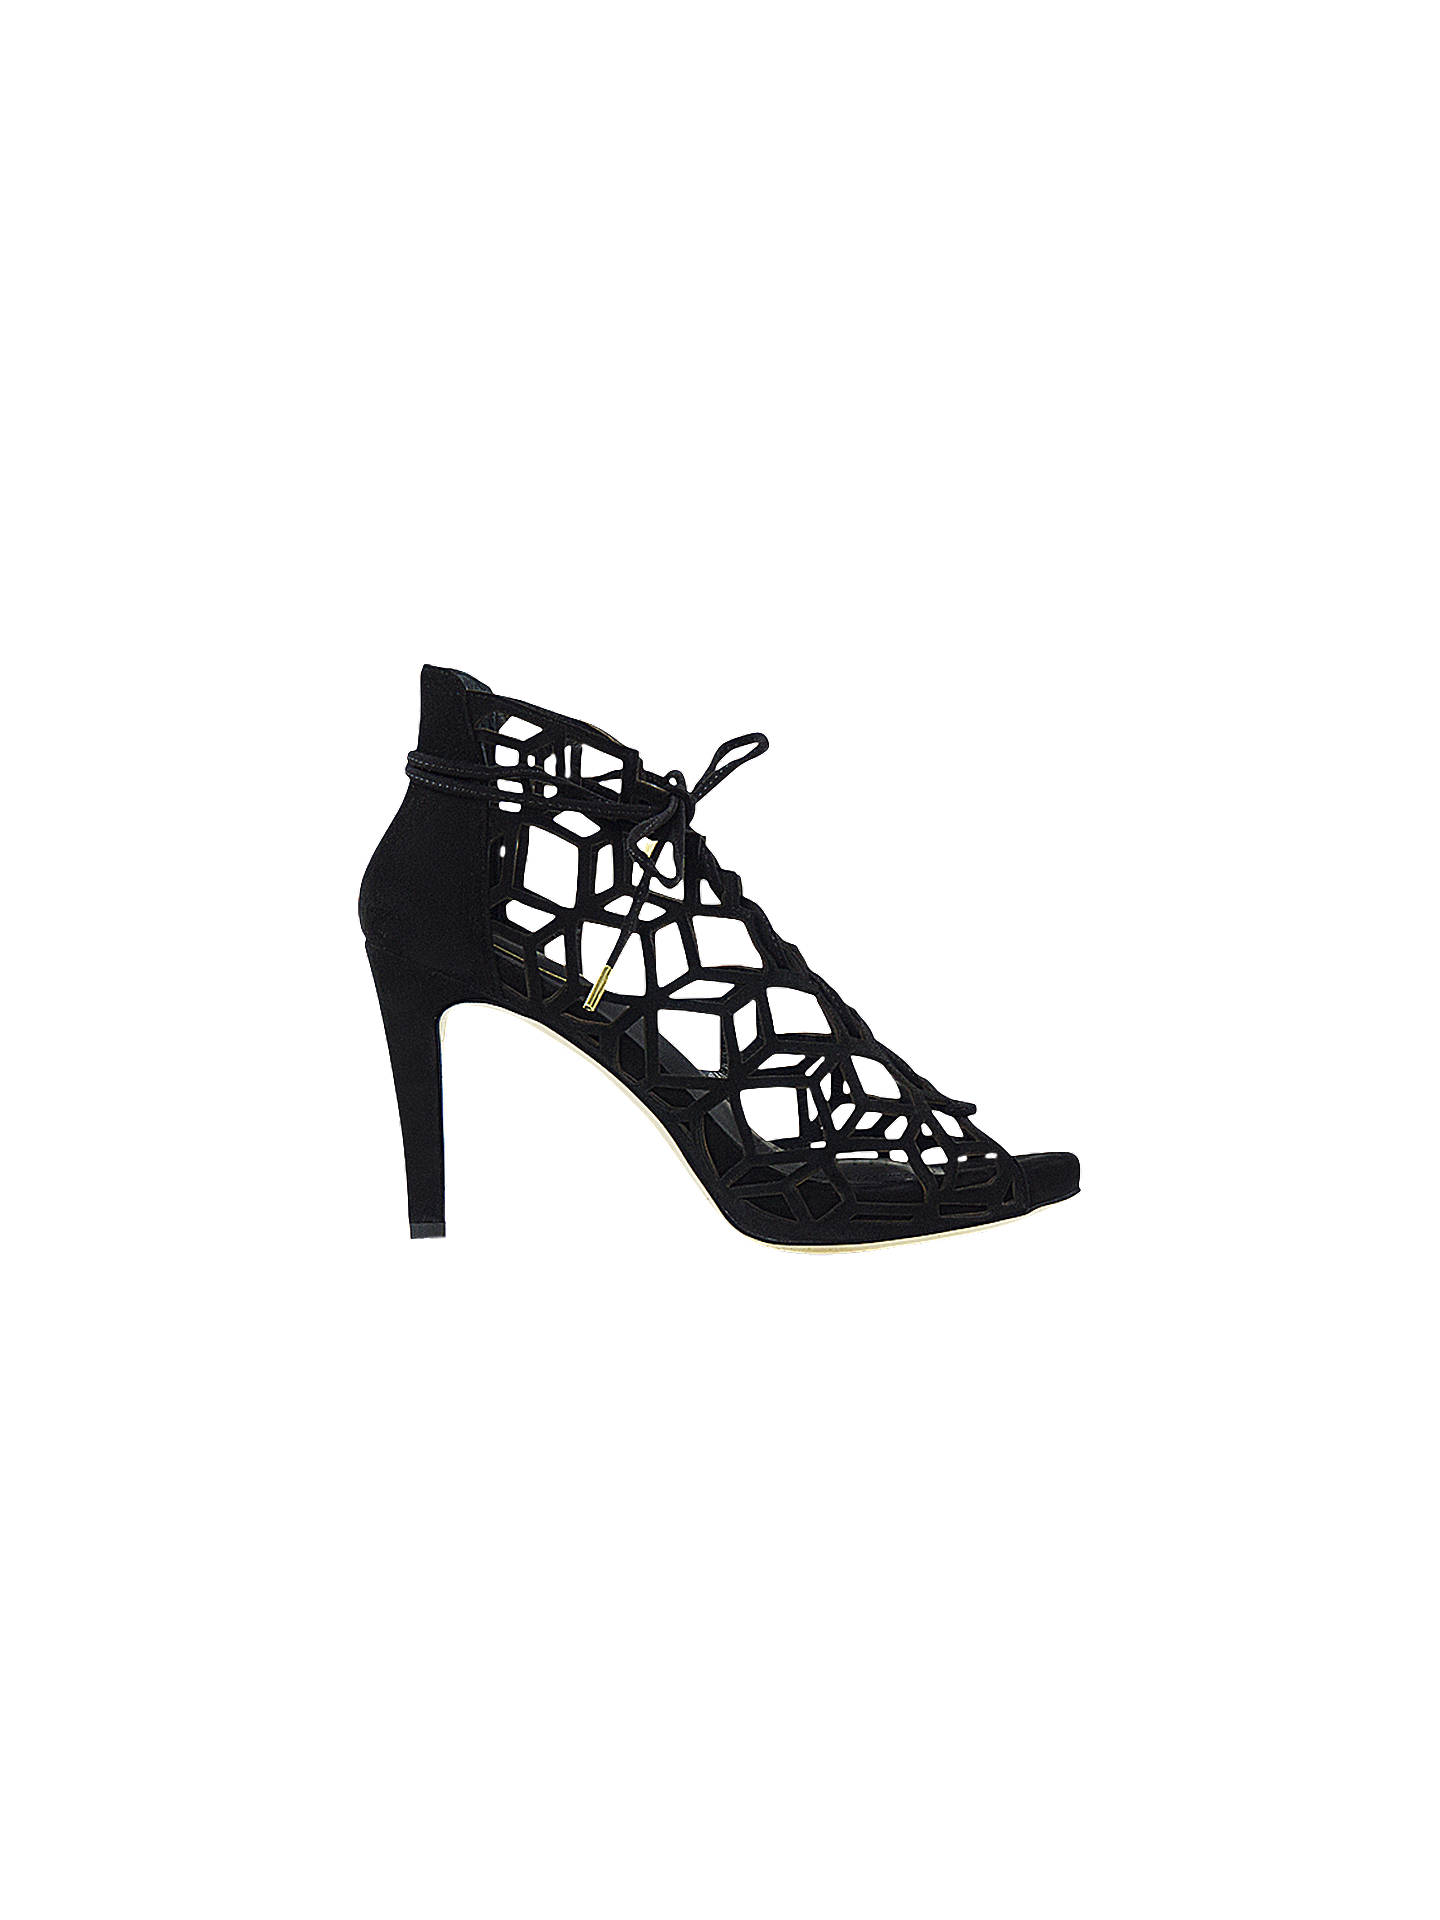 BuySargossa Fairytale Lace Up Stiletto Heel Sandals, Black Suede, 6 Online at johnlewis.com